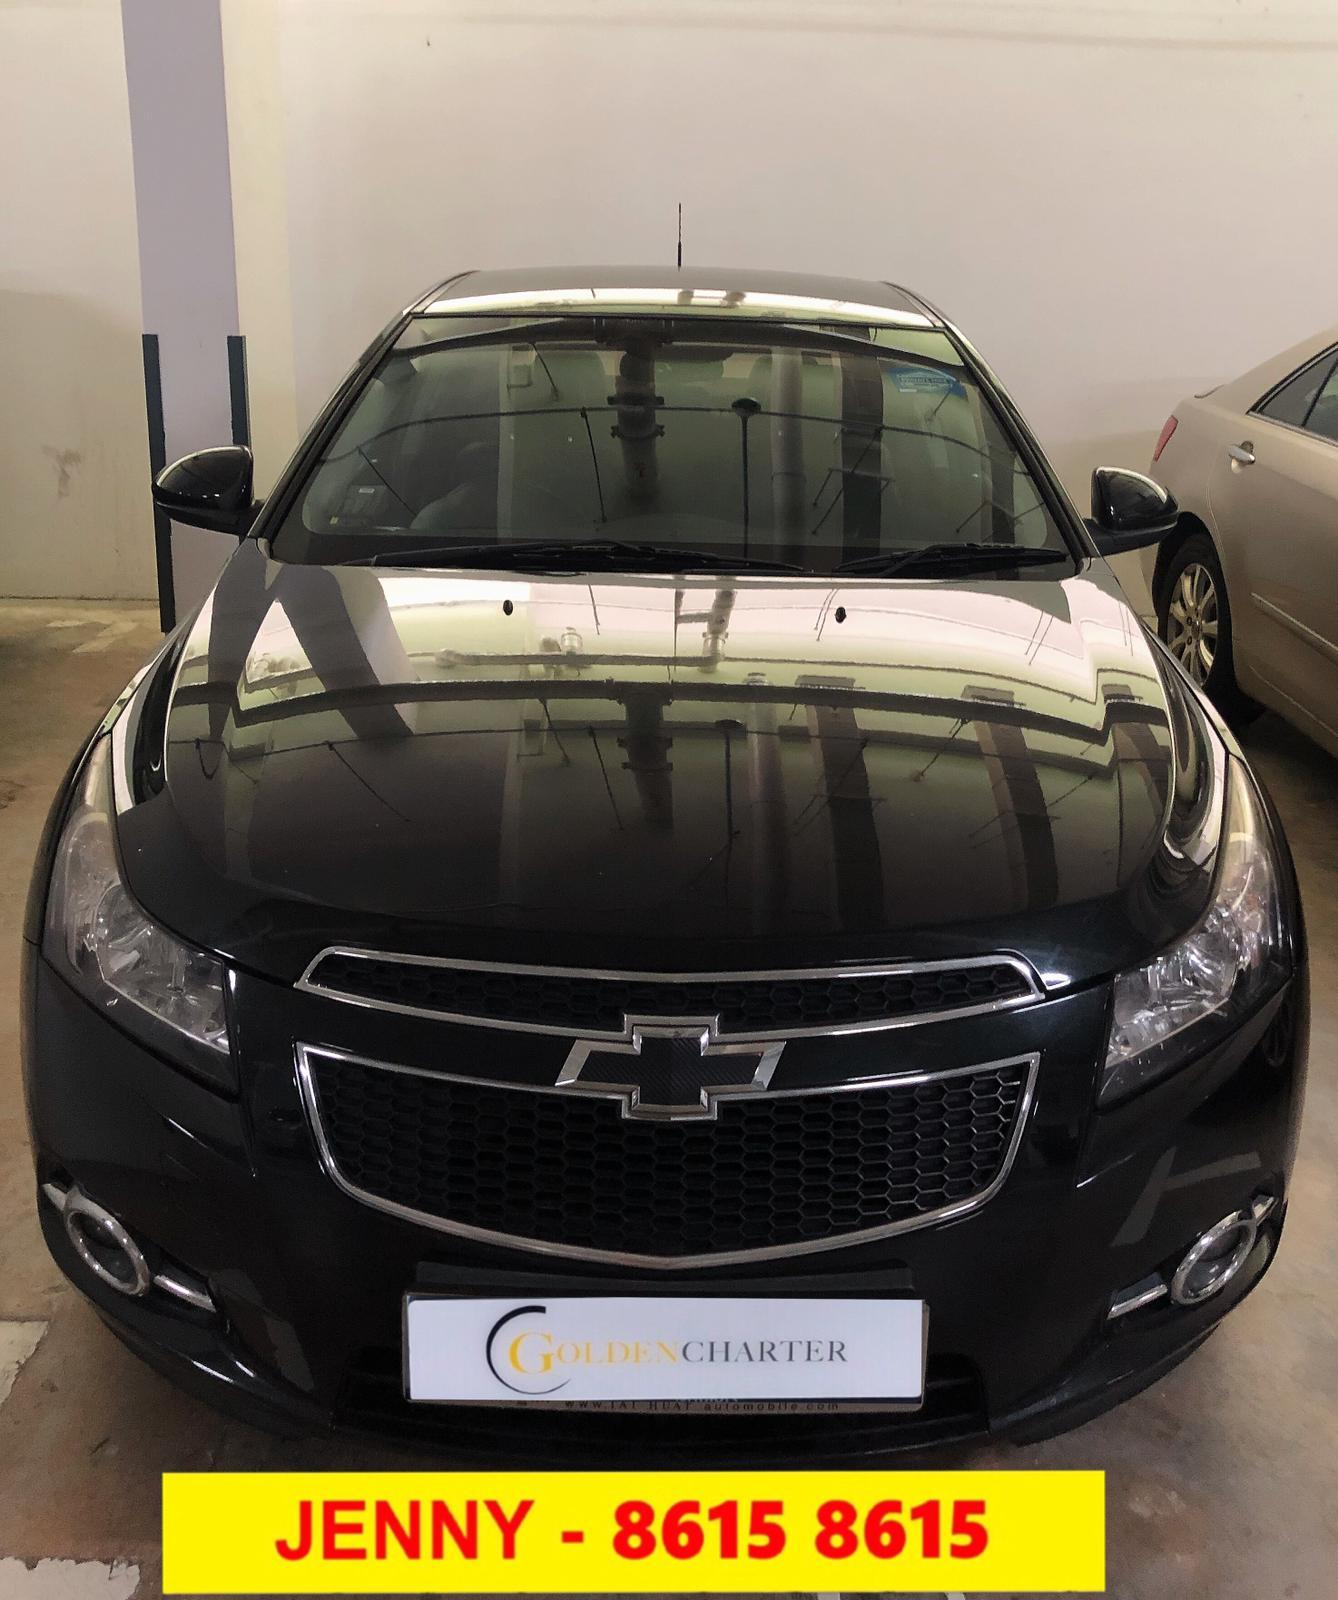 CHEVROLET CRUZE 1.6A BLACK condi car $50 Toyota Vios Wish Altis Car Axio Premio Allion Camry Estima Honda Jazz Fit Stream Civic Cars Hyundai Avante Mazda 3 2 For Rent Lease To Own Grab Rental Gojek Or Personal Use Low price and Cheap